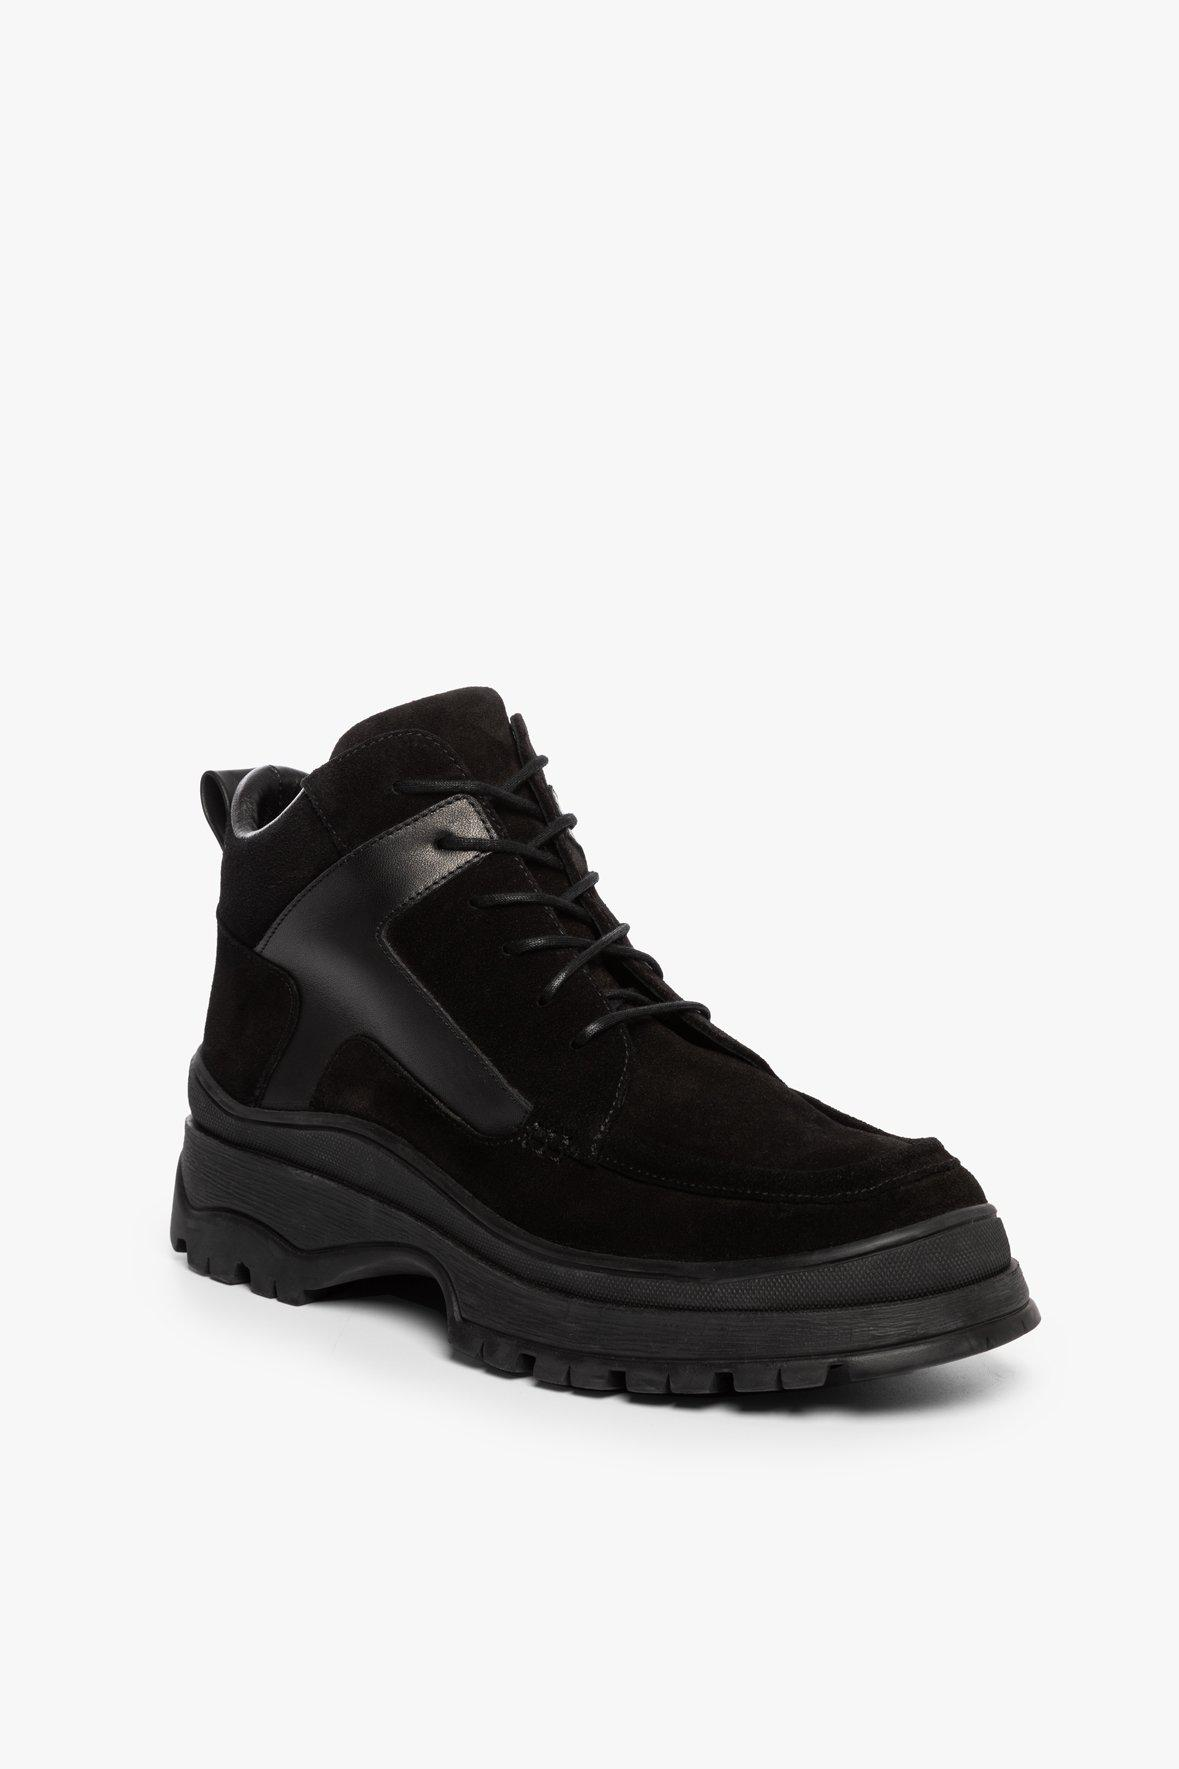 ROCKY BOOT | BLACK SUEDE